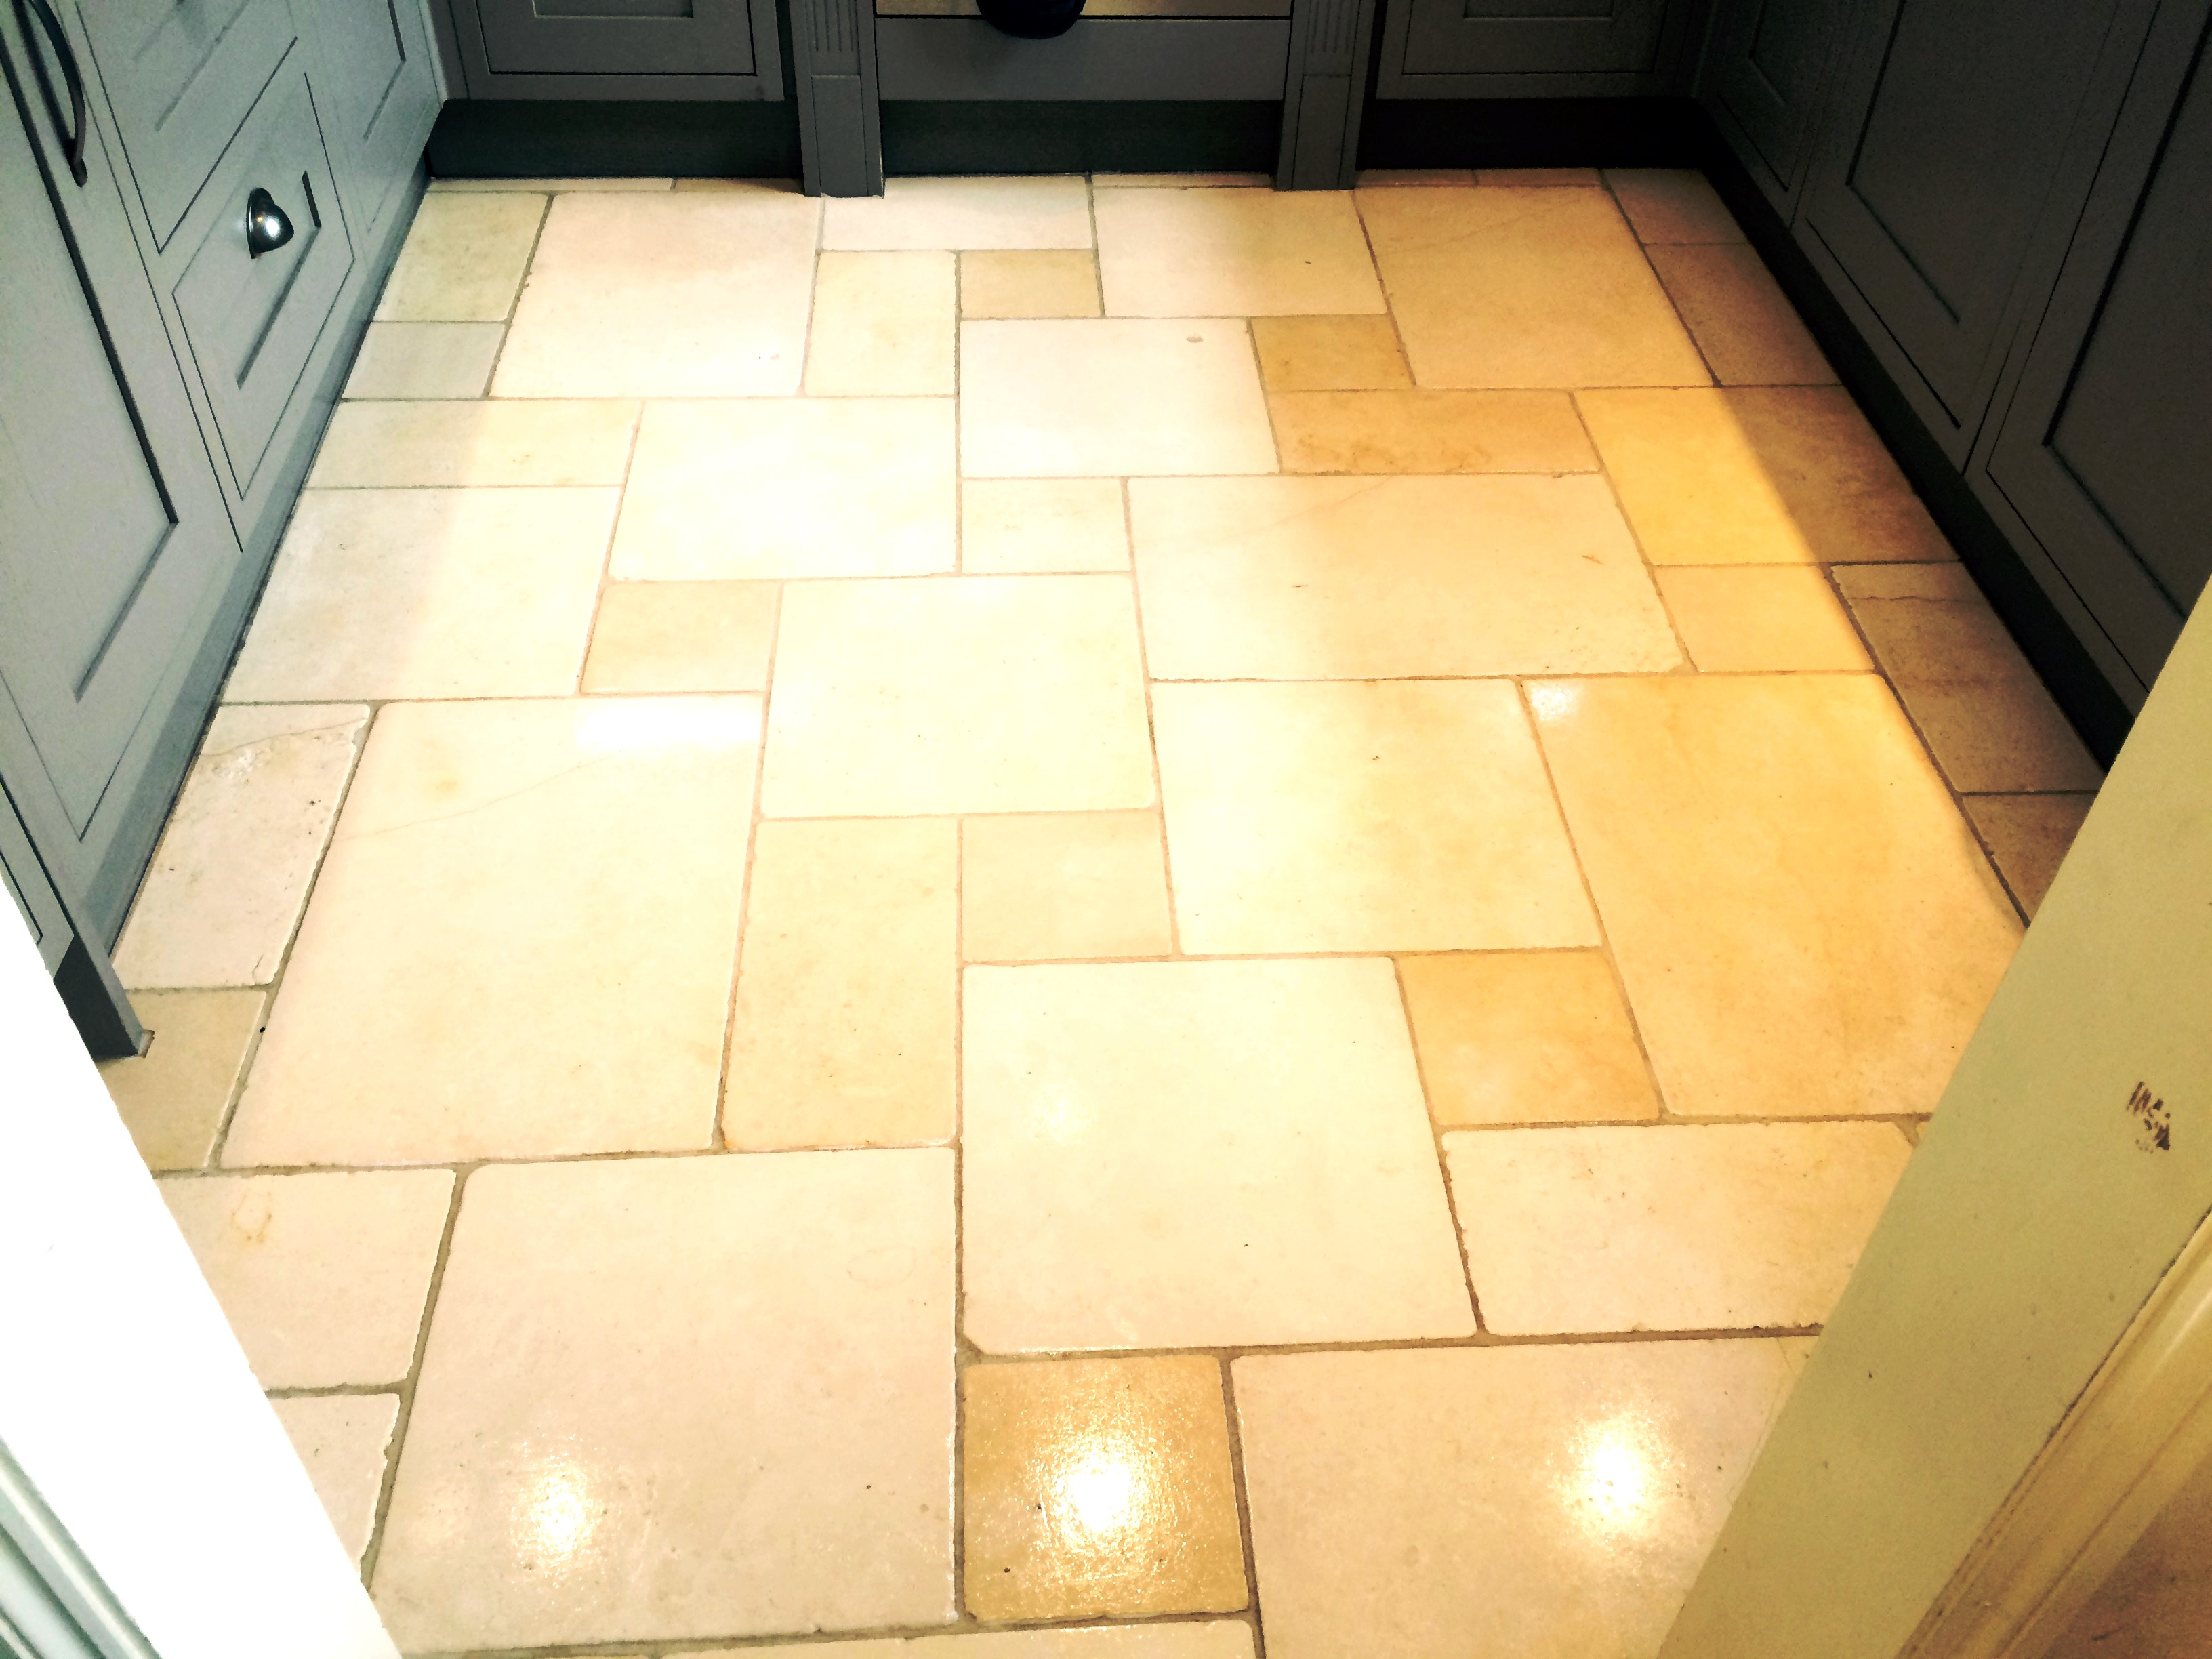 Limestone Kitchen Floor After Cleaning In Hartfield